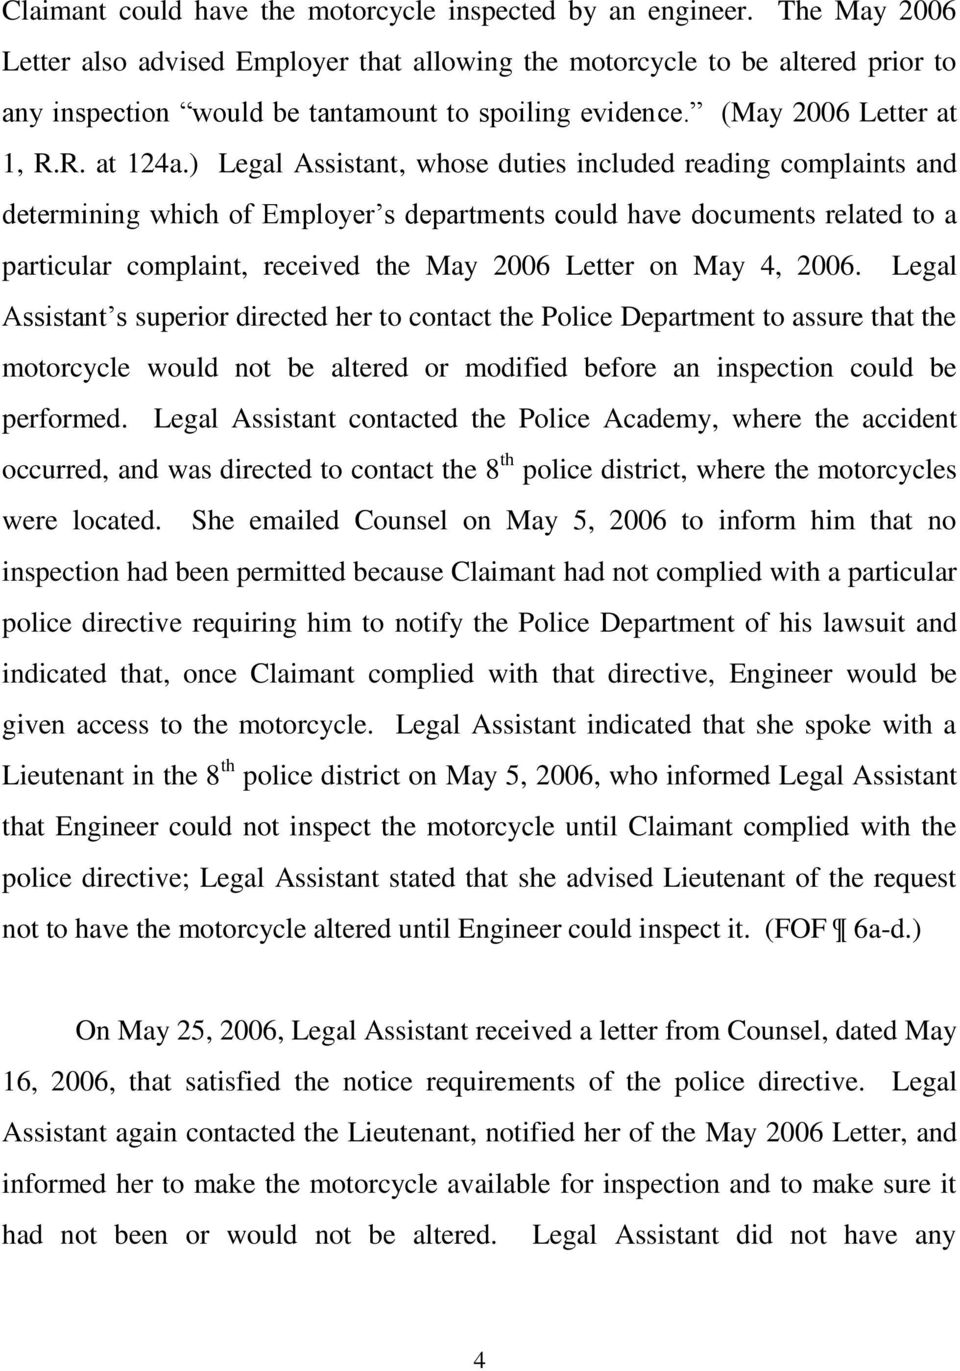 ) Legal Assistant, whose duties included reading complaints and determining which of Employer s departments could have documents related to a particular complaint, received the May 2006 Letter on May